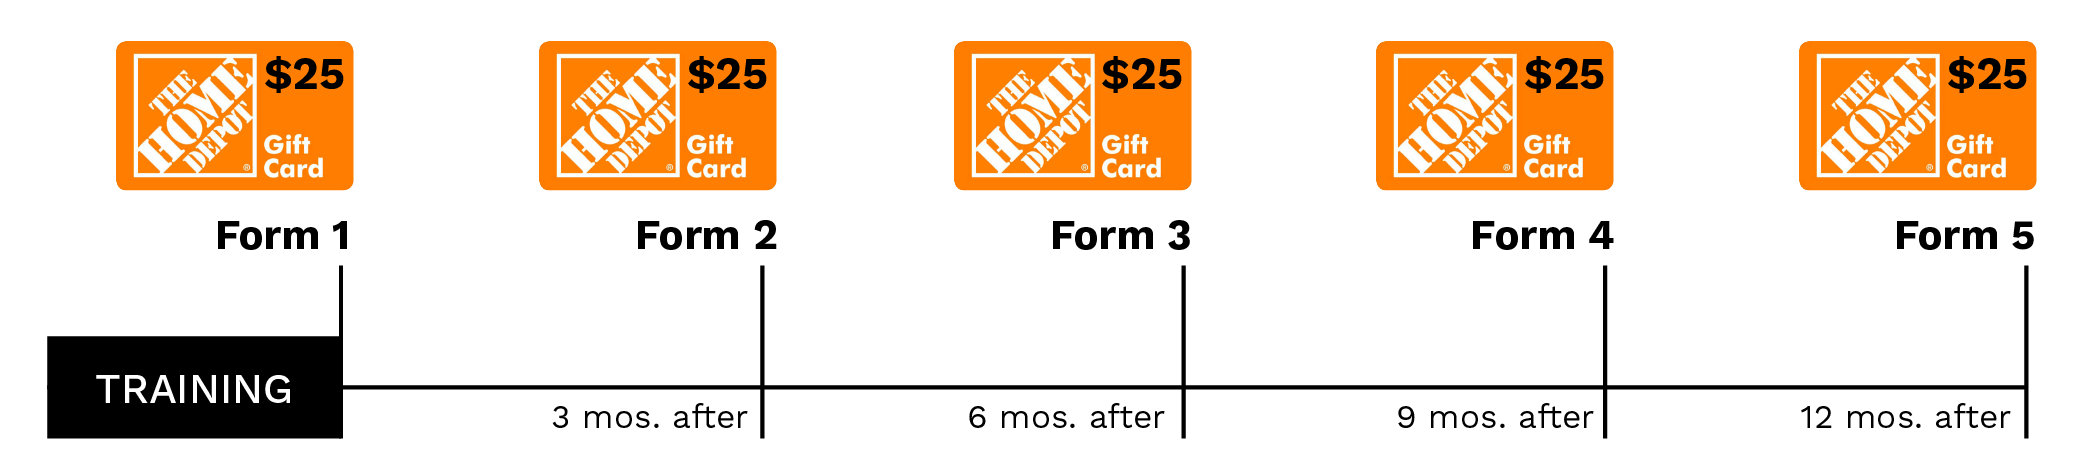 Now, students receive up to $125 in Home Depot giftcards just for completing short employment forms.